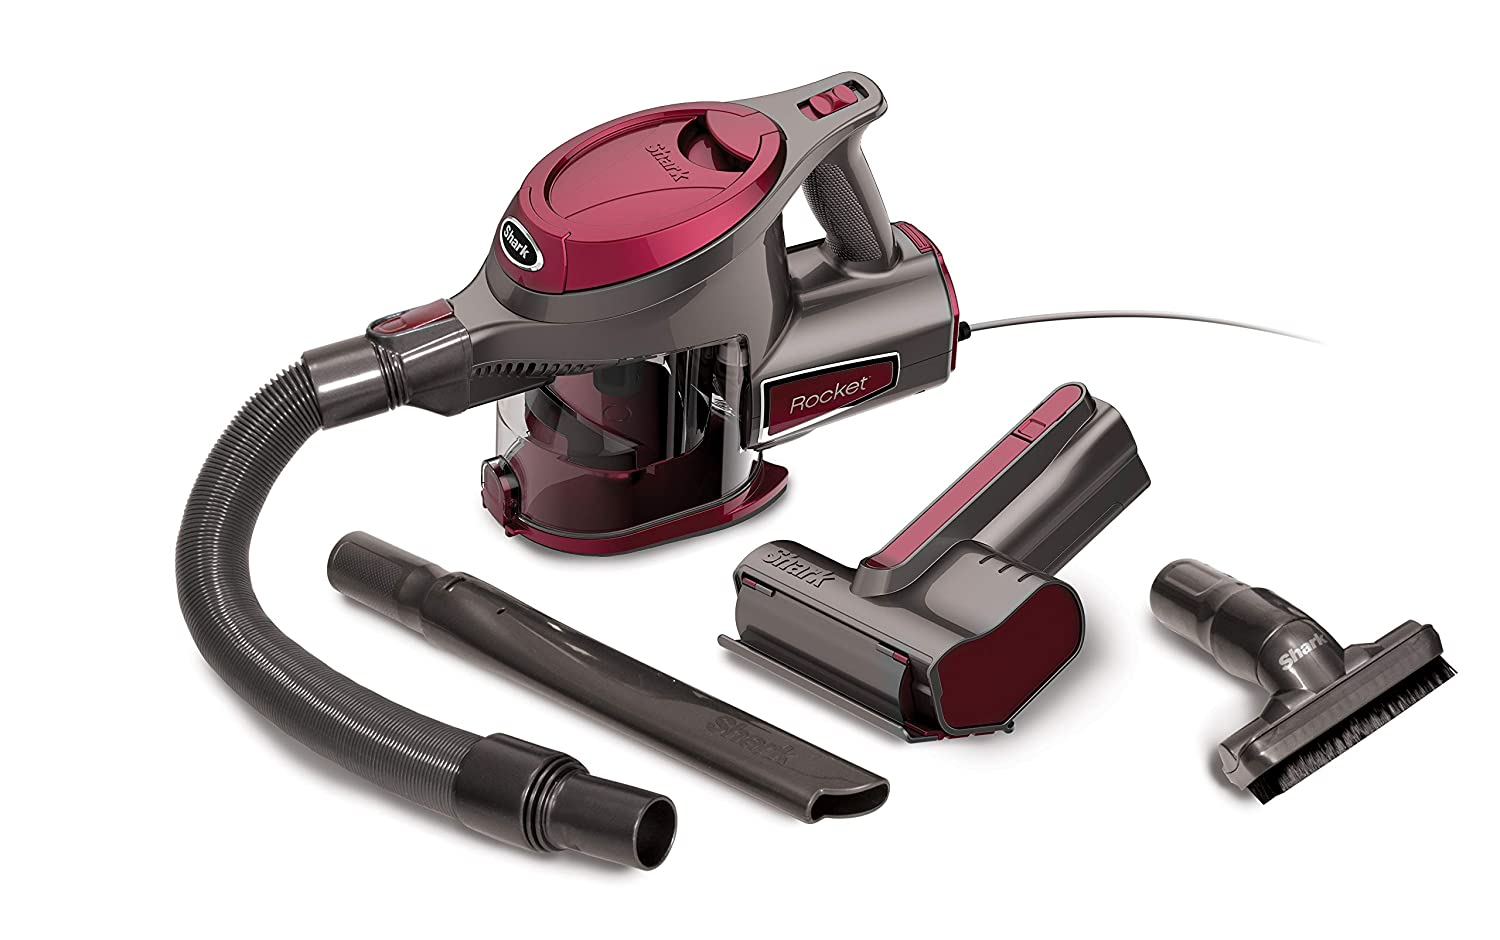 Top 10 Best Stair Vacuum Cleaners (2020 Reviews & Buying Guide) 8